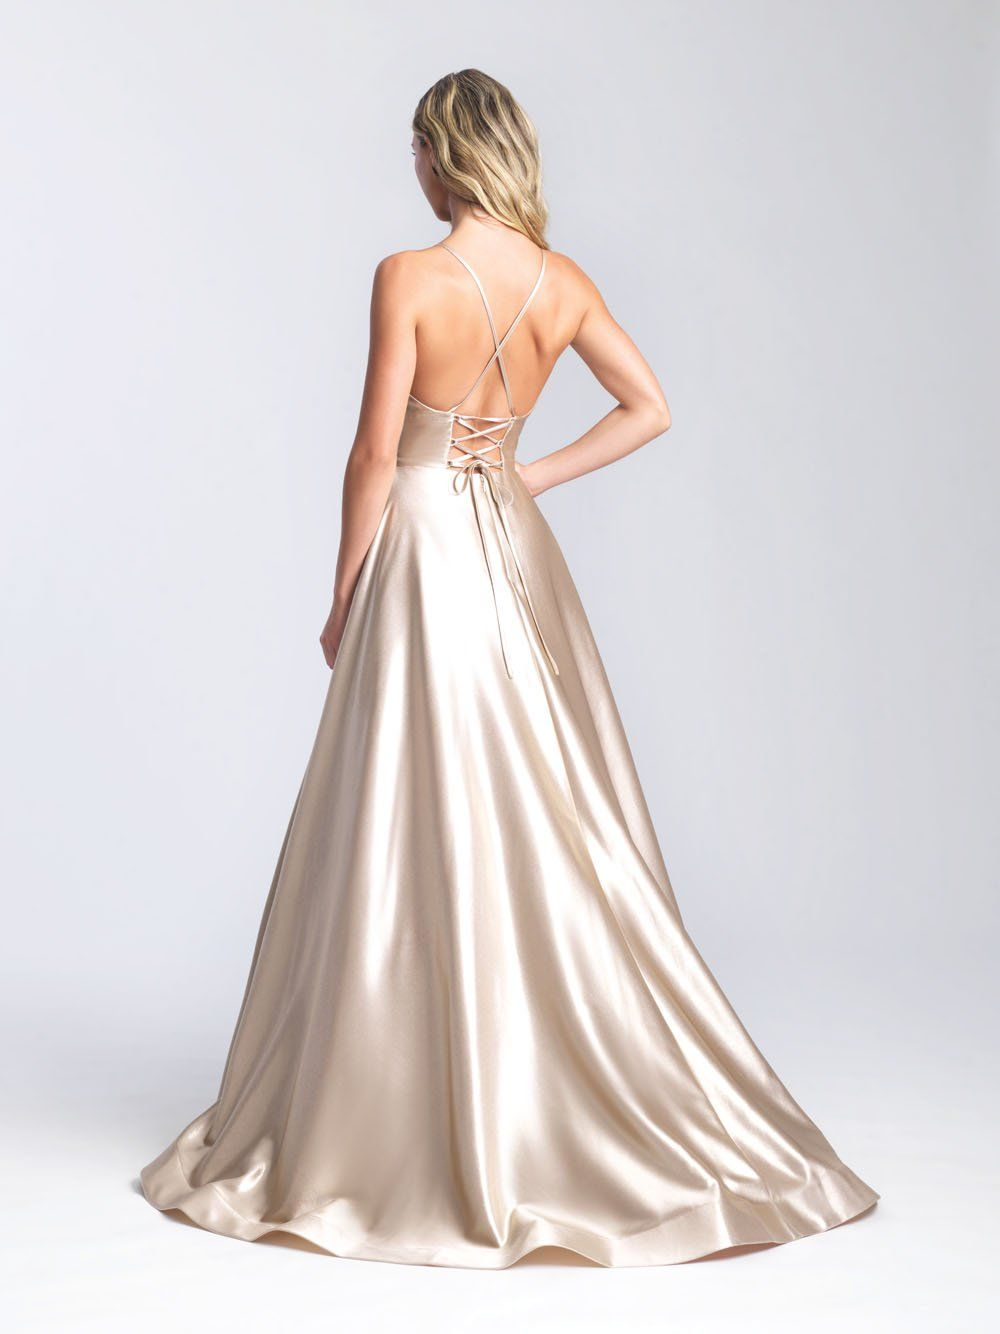 Madison James 20 392 Dress In 2021 Madison James Prom Dress Prom Dress Stores A Line Gown [ 1334 x 1000 Pixel ]